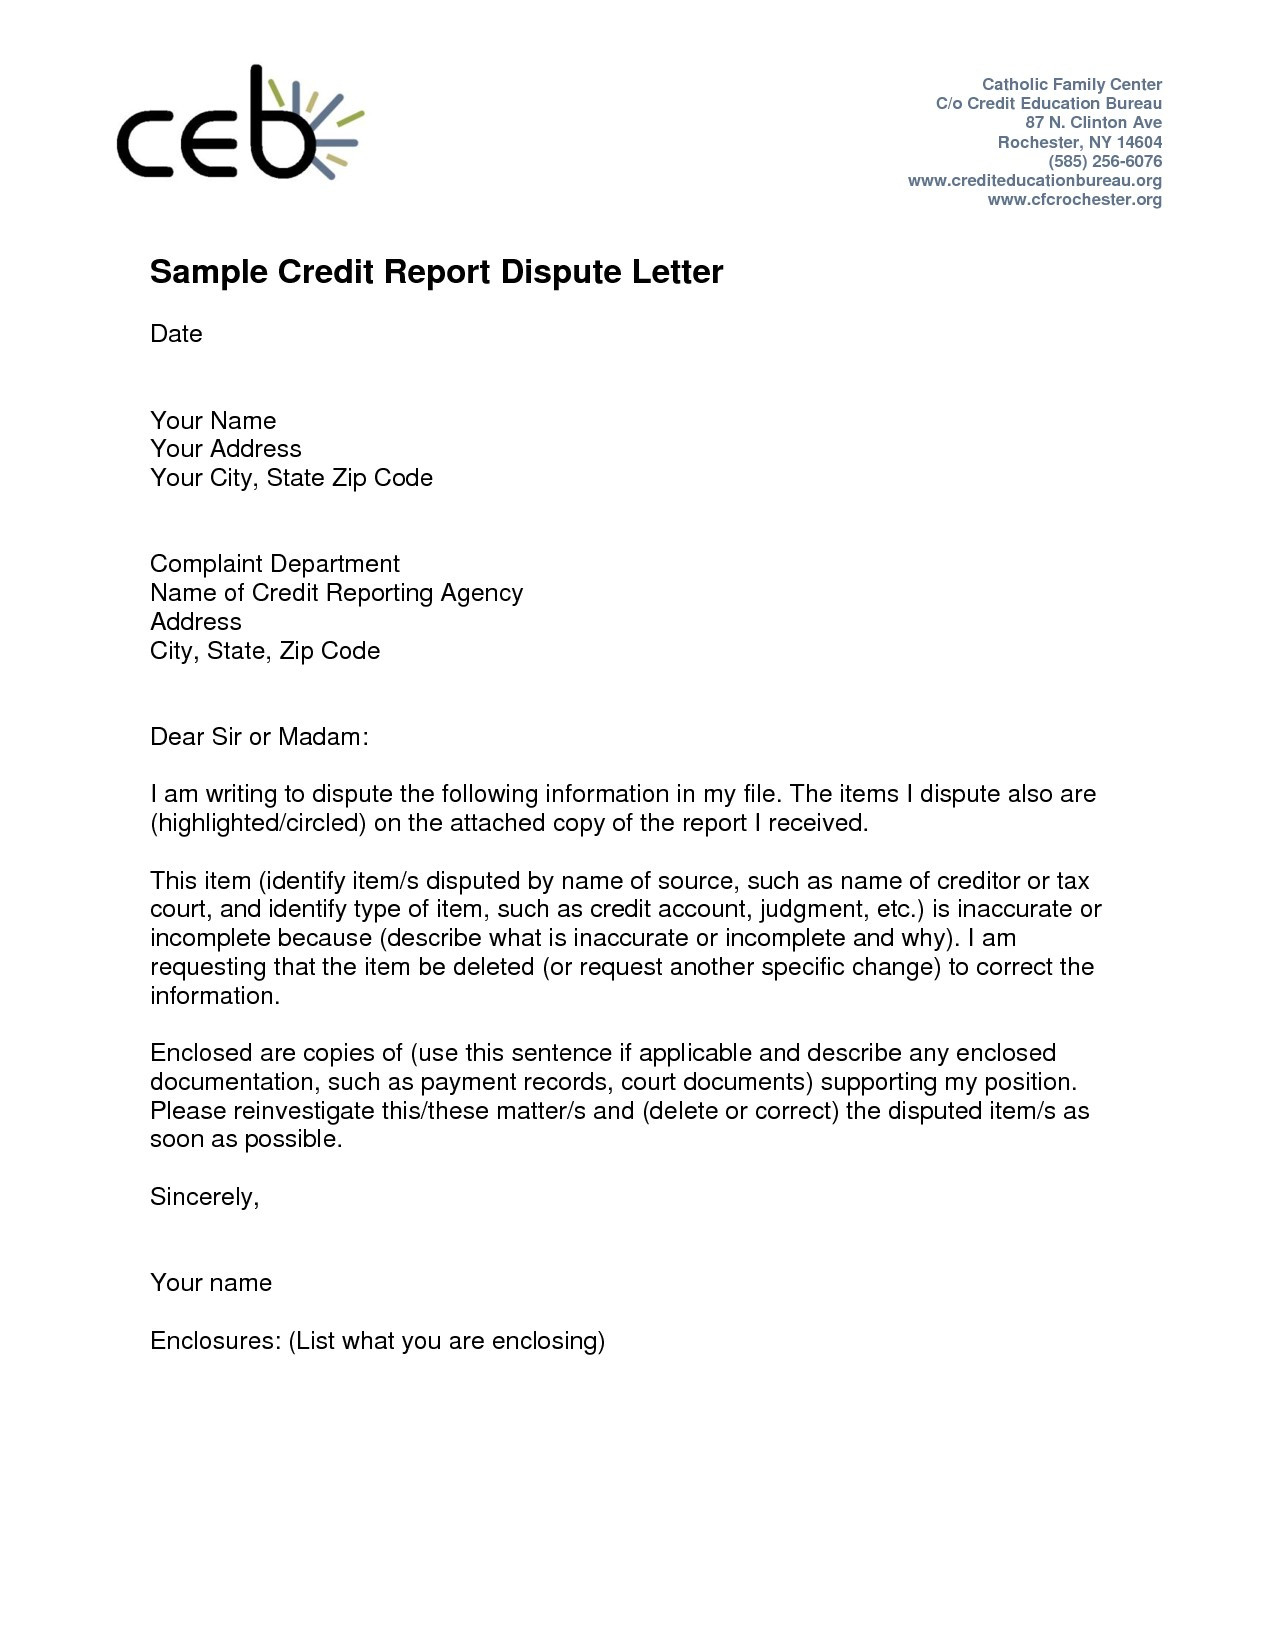 Experian Dispute Letter Template - the Best Way to Dispute Credit Report Inspirational Fresh Late